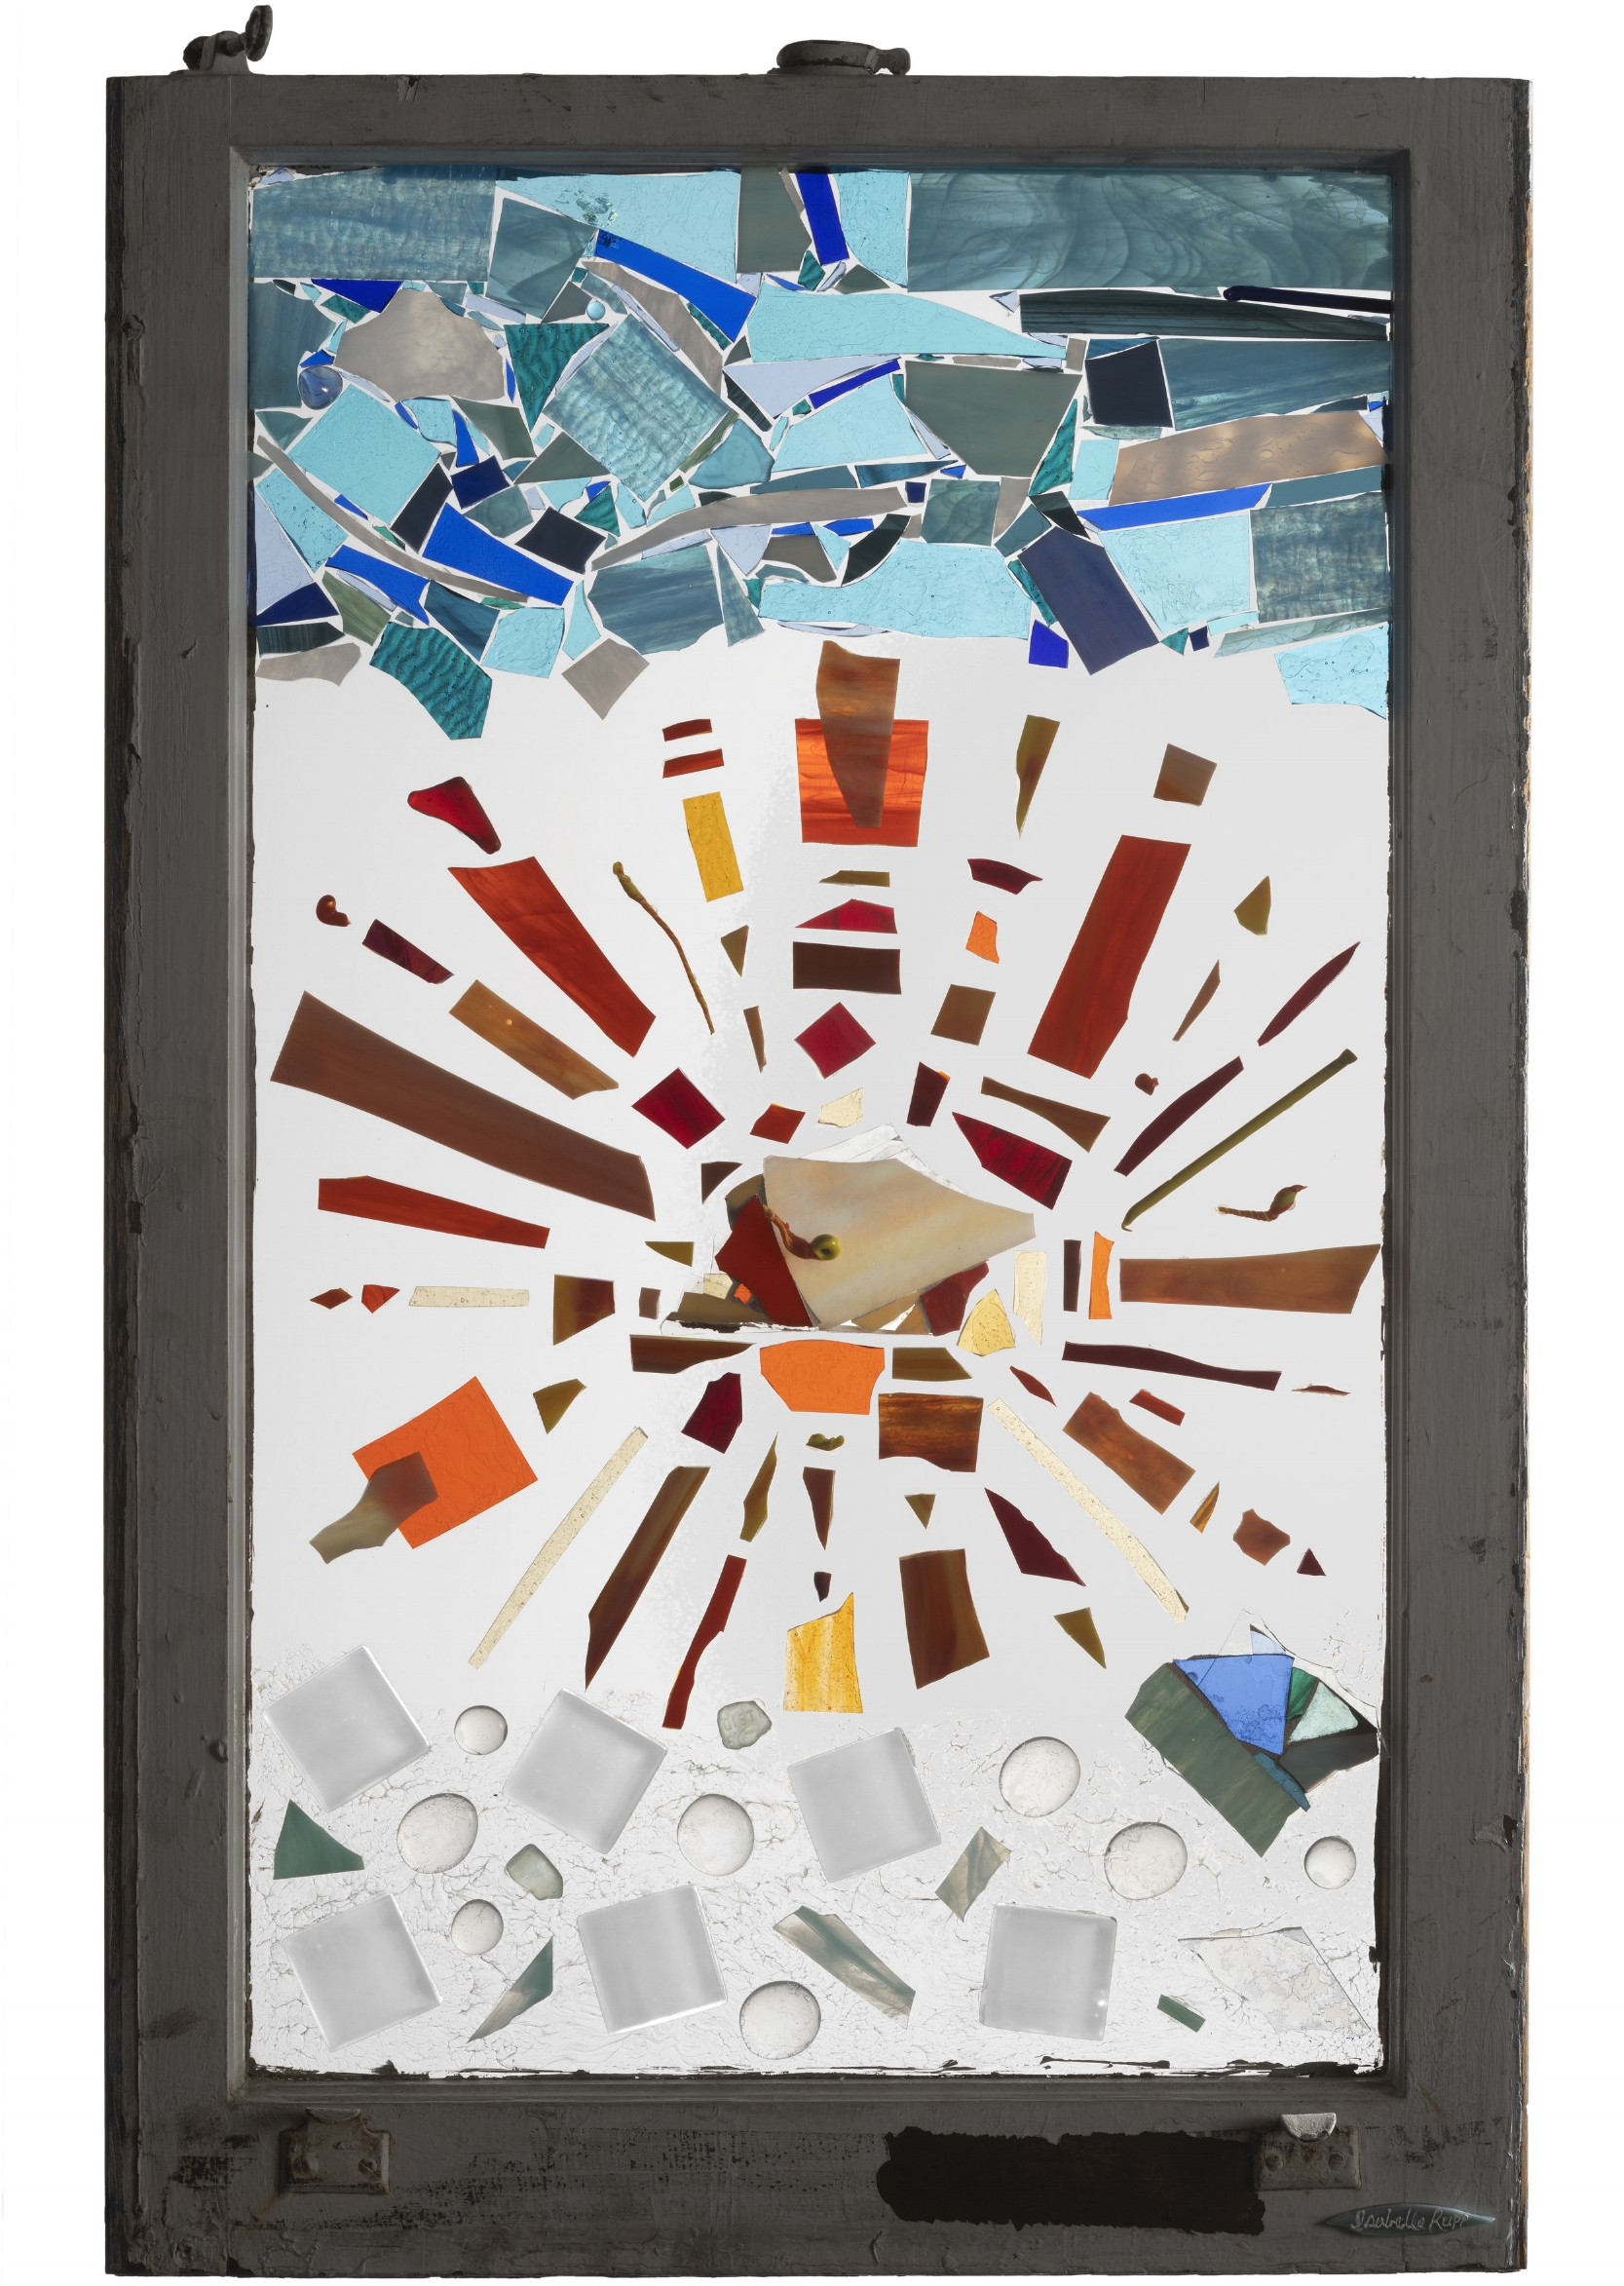 Melt, 2009. Fused, flameworked, and cold-cut glass, gel medium, 34 x 21¾ in.   Window from Chelsea, New York, NY